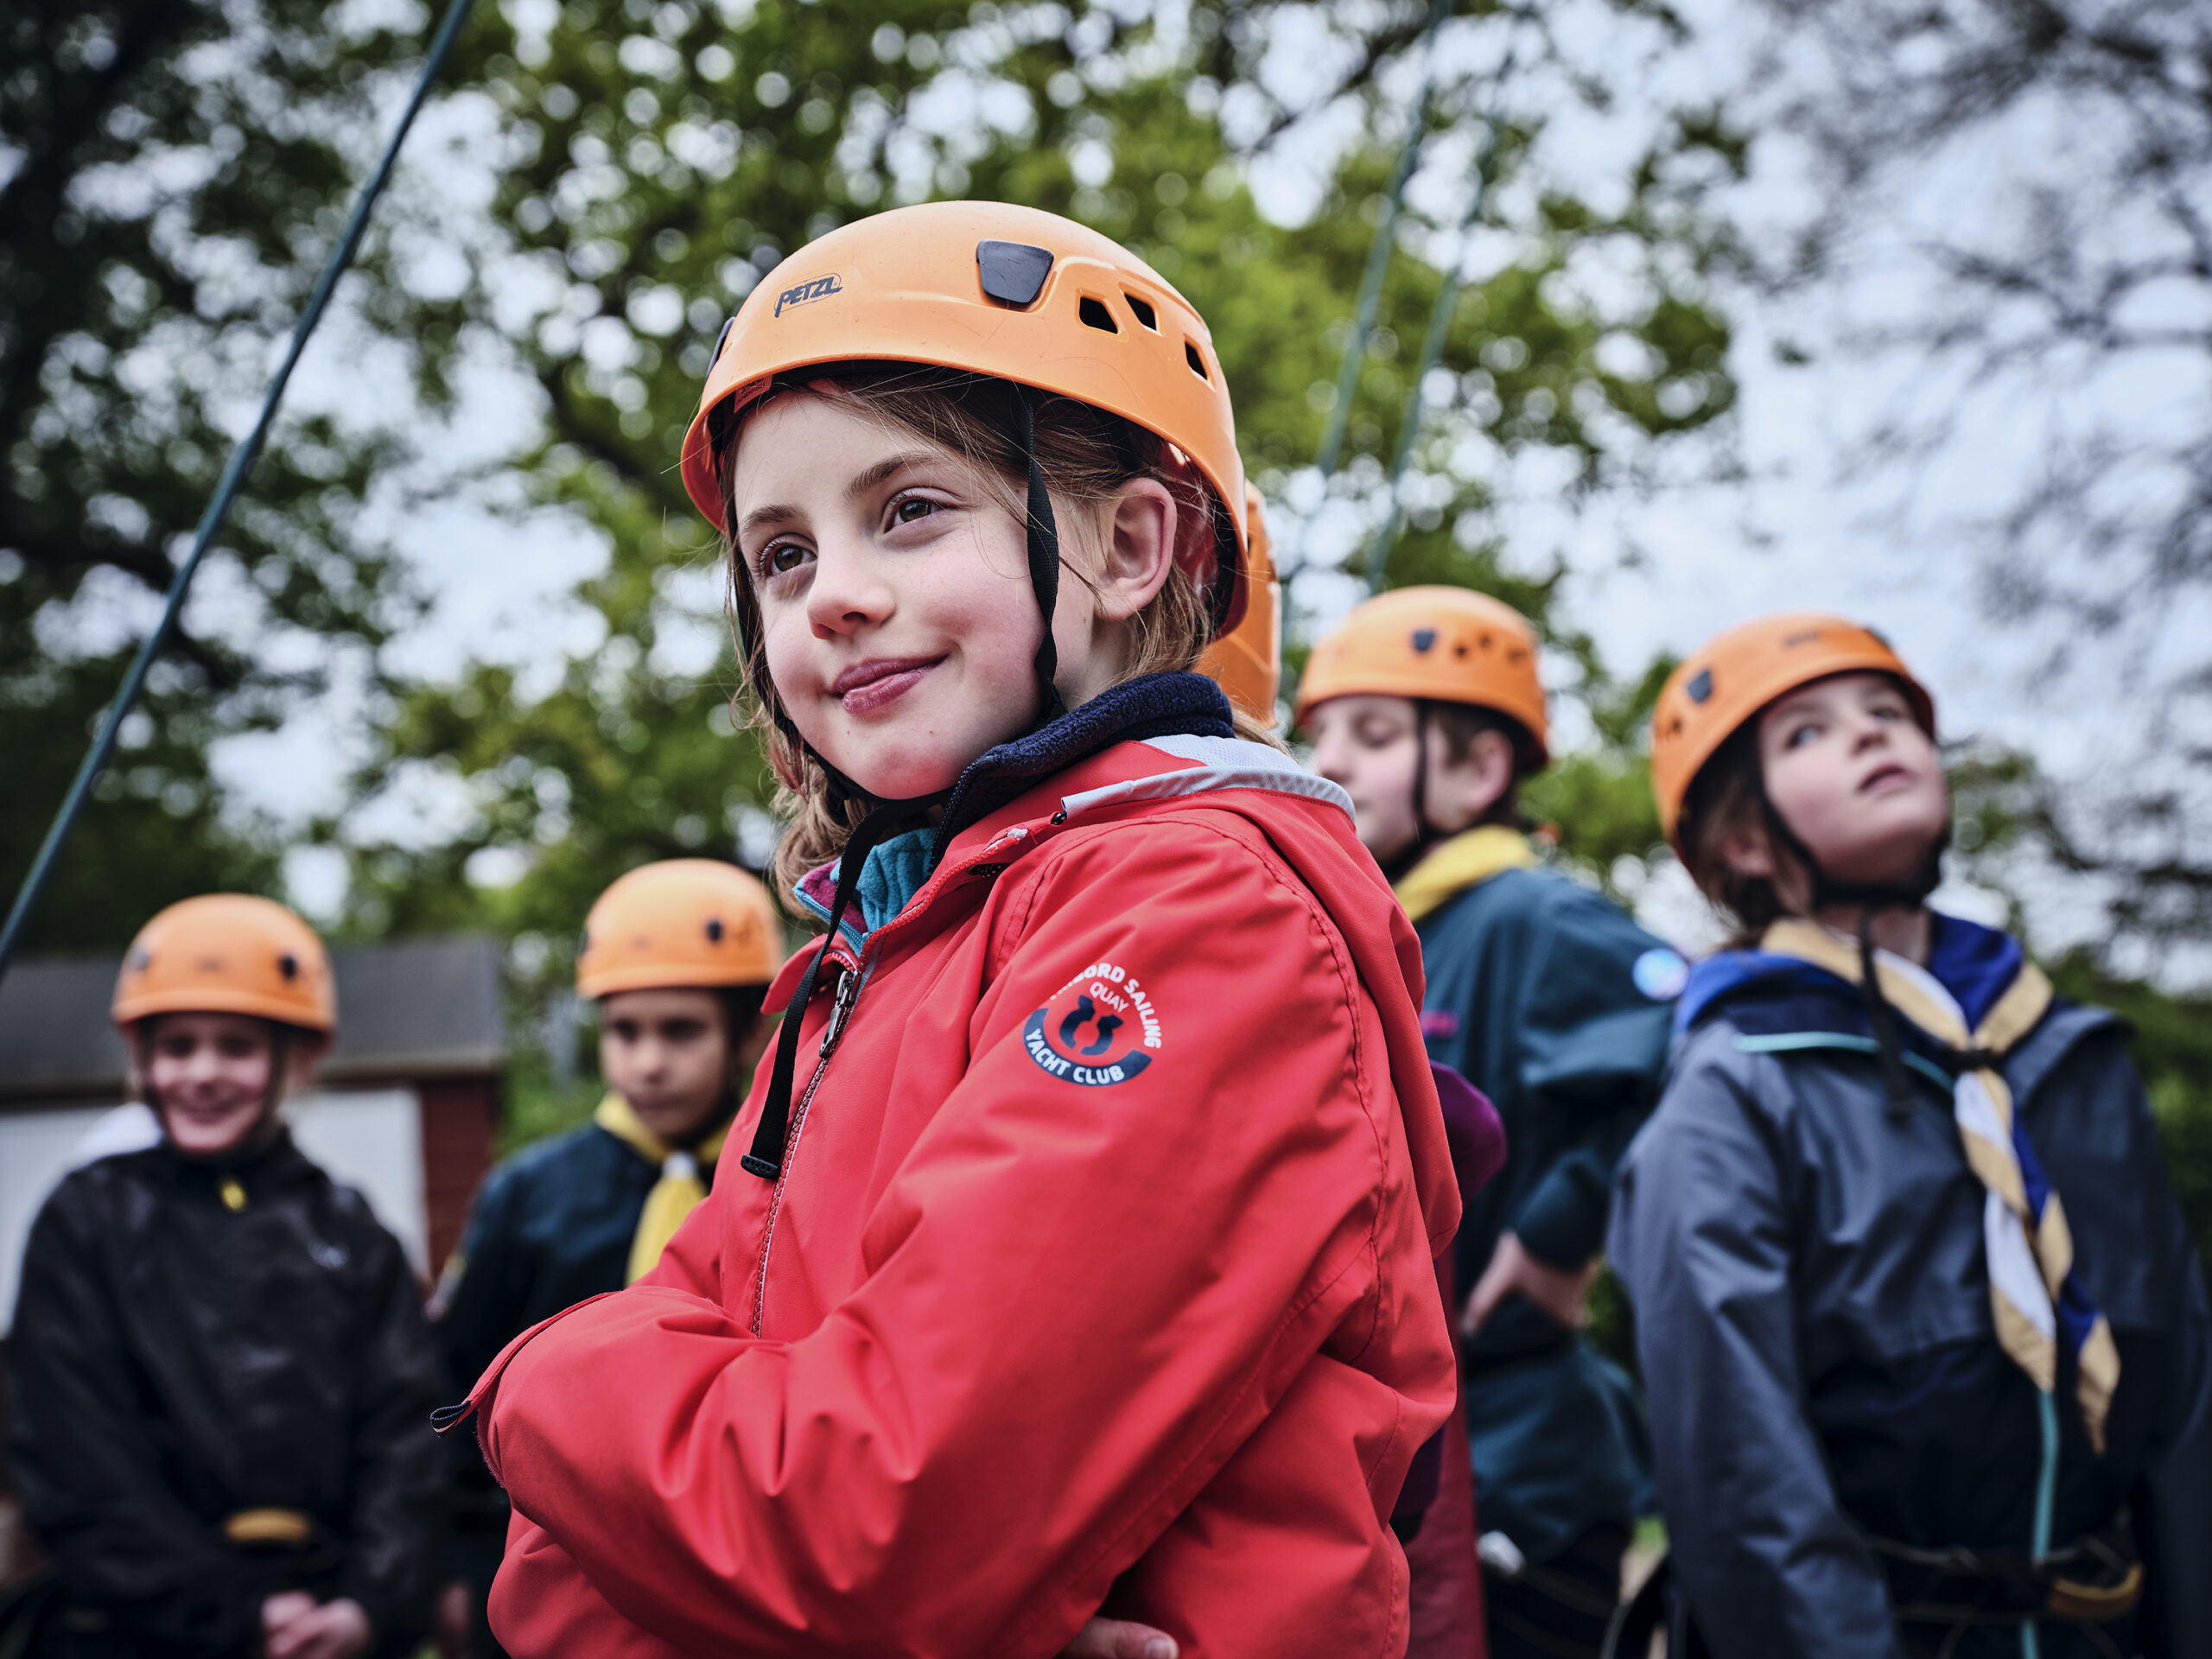 A group of Scouts wearing climbing helmets an activity offered by Whitley Bay Scouts